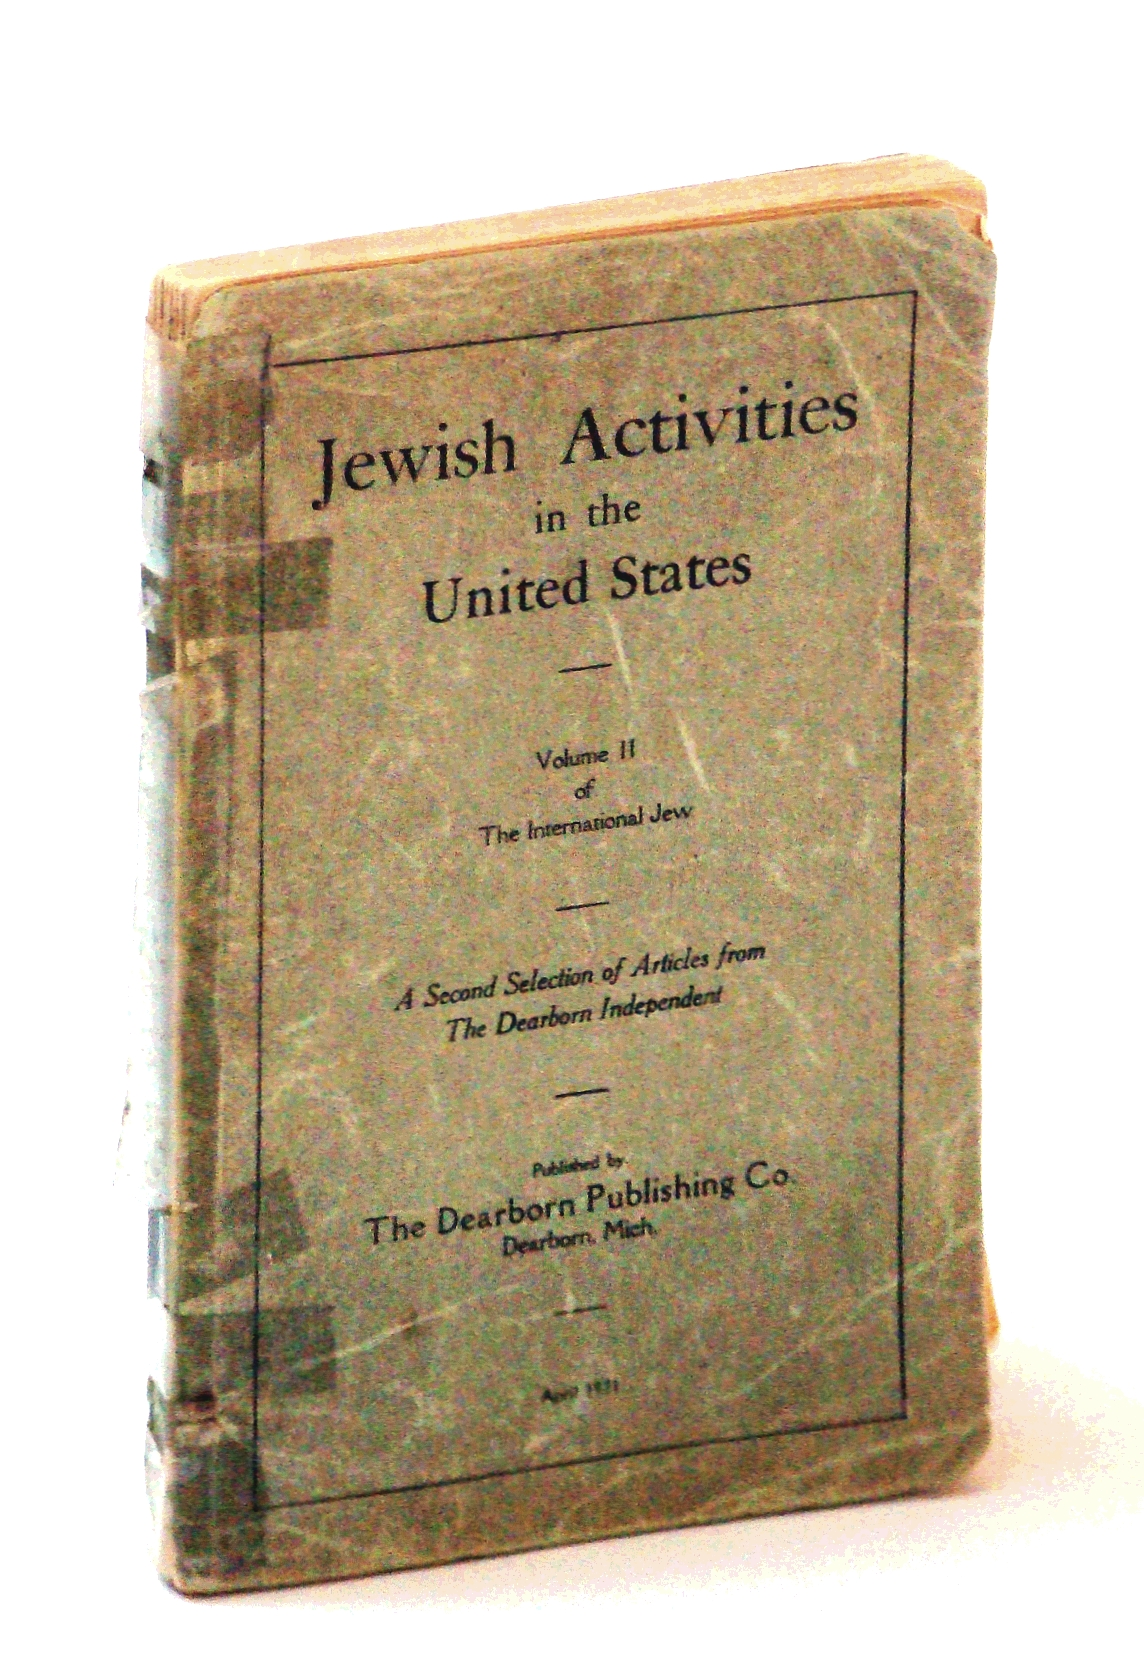 Image for Jewish Activities in the United States: Volume II (2/Two) of The International Jew